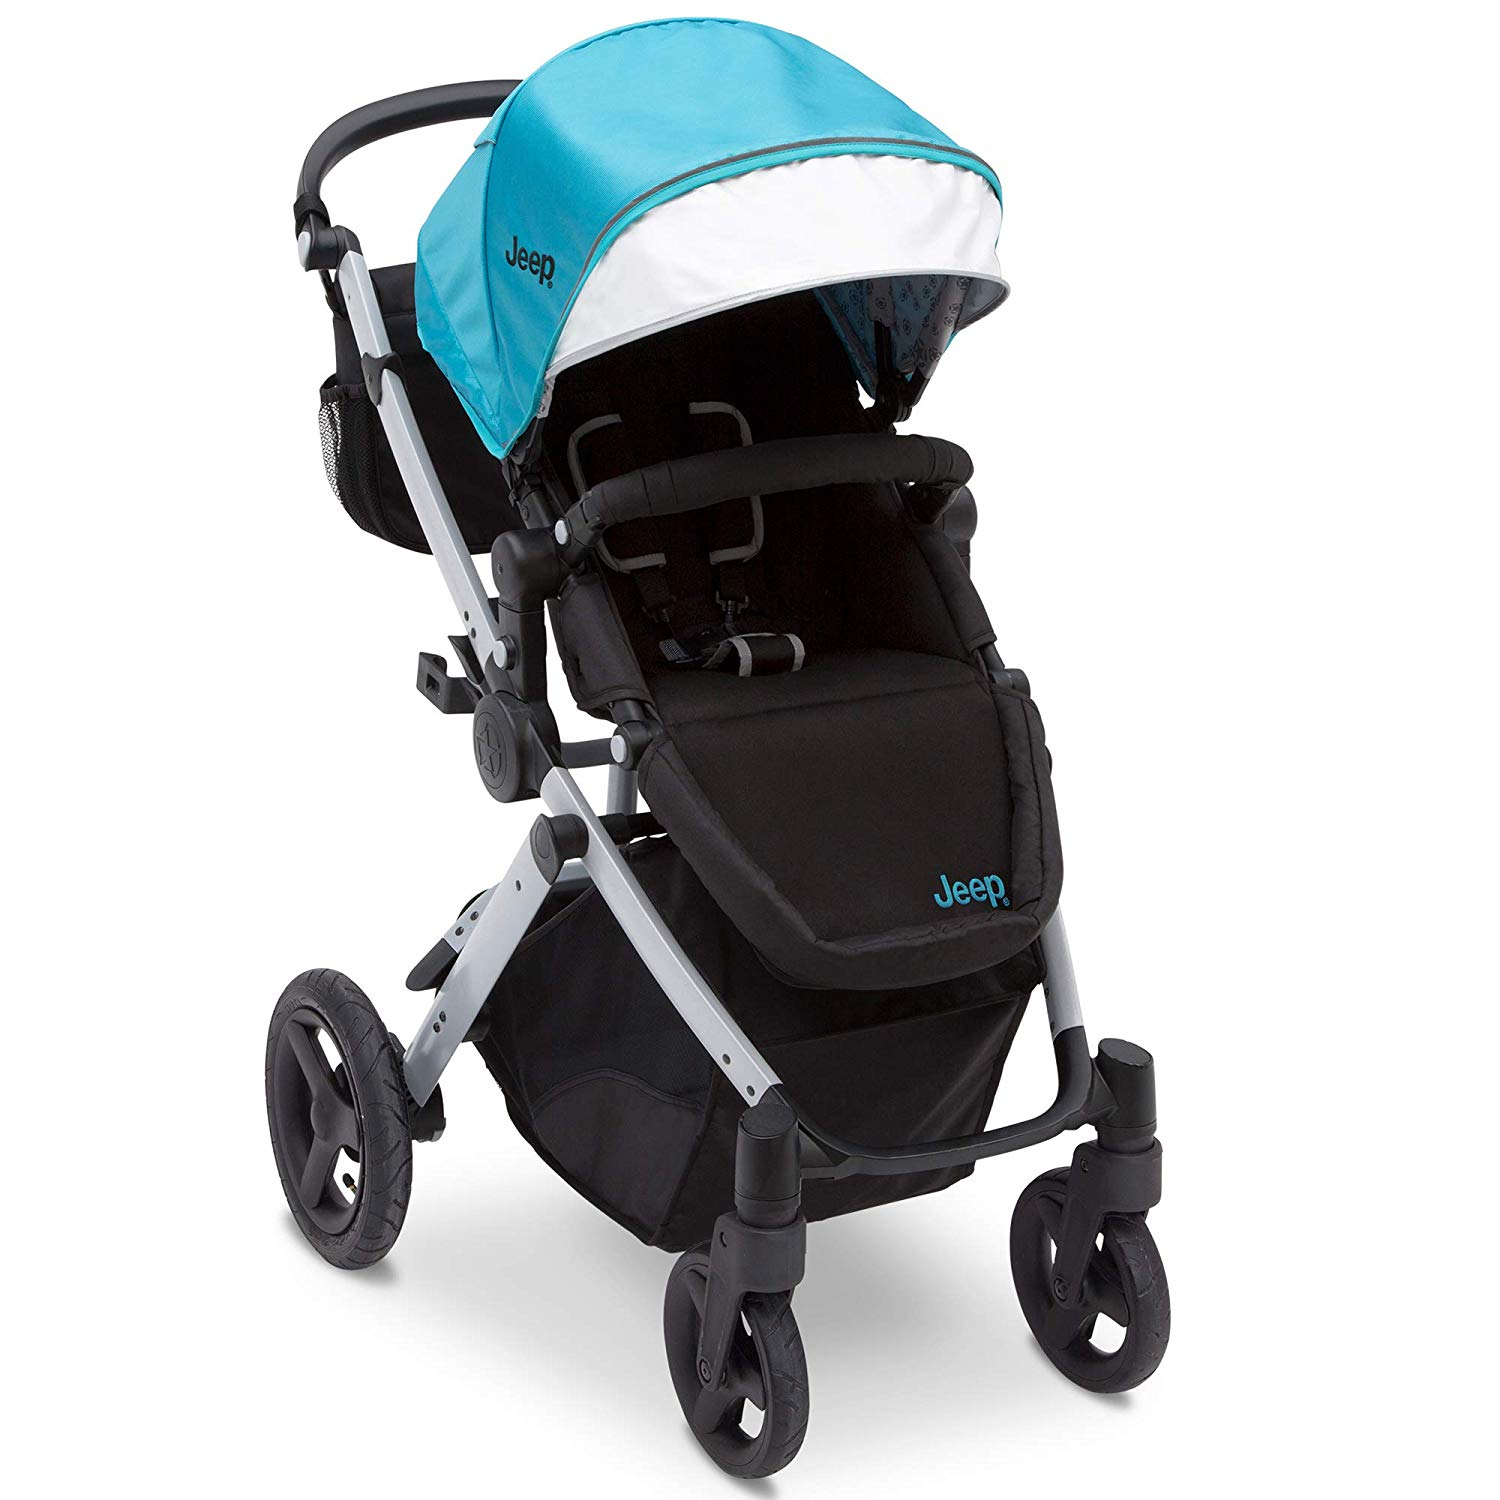 Jeep Sport Utility All-Terrain Stroller, Aqua on Silver Frame